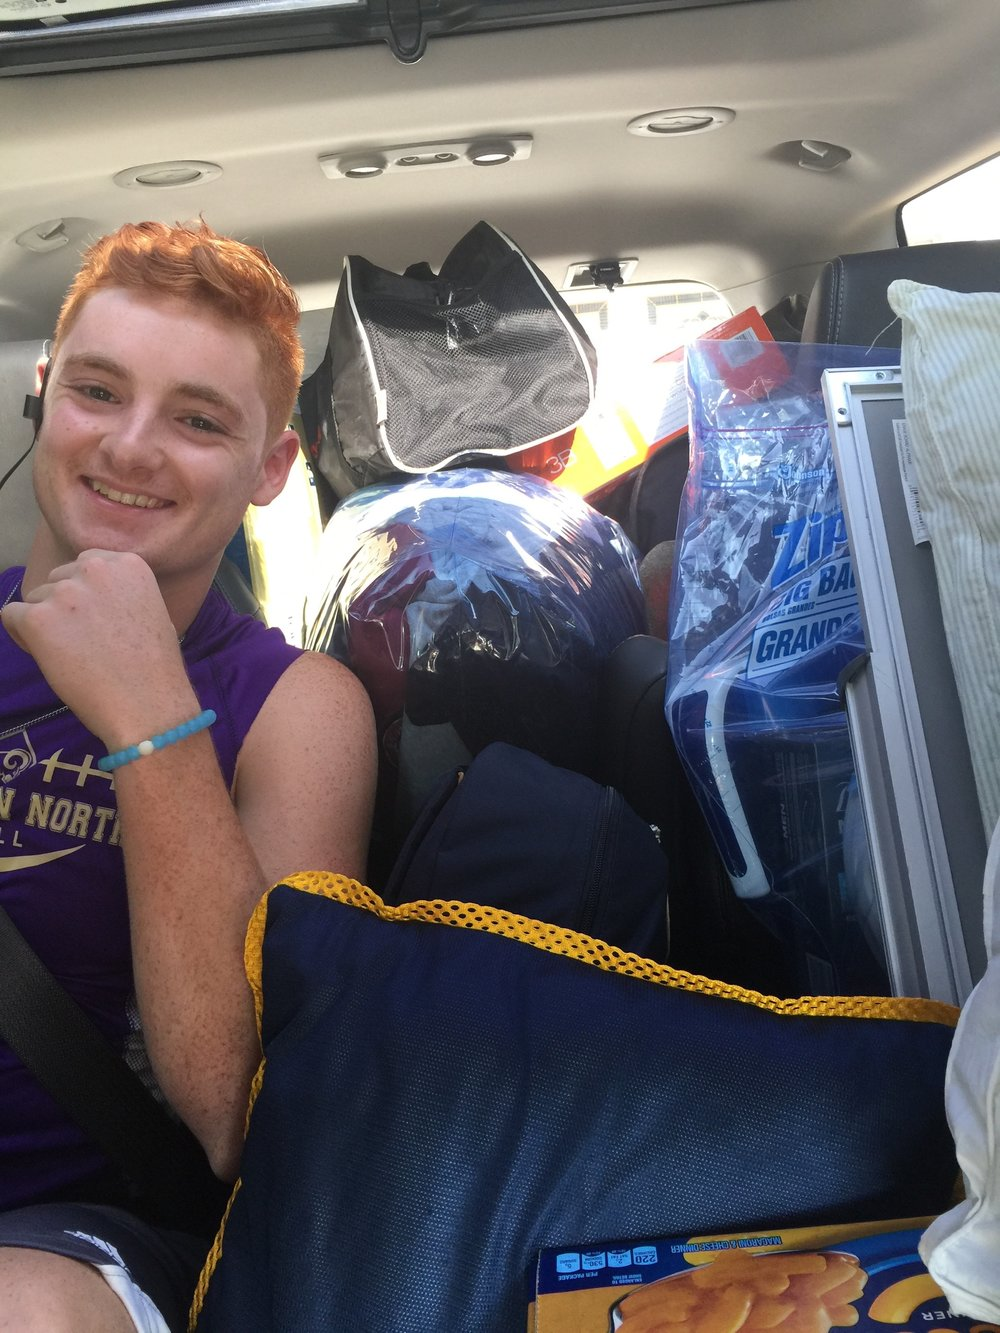 Christine's son and the packed car en route to college. Clearly, he has everything he could possibly need along with anything his dorm mates might need!